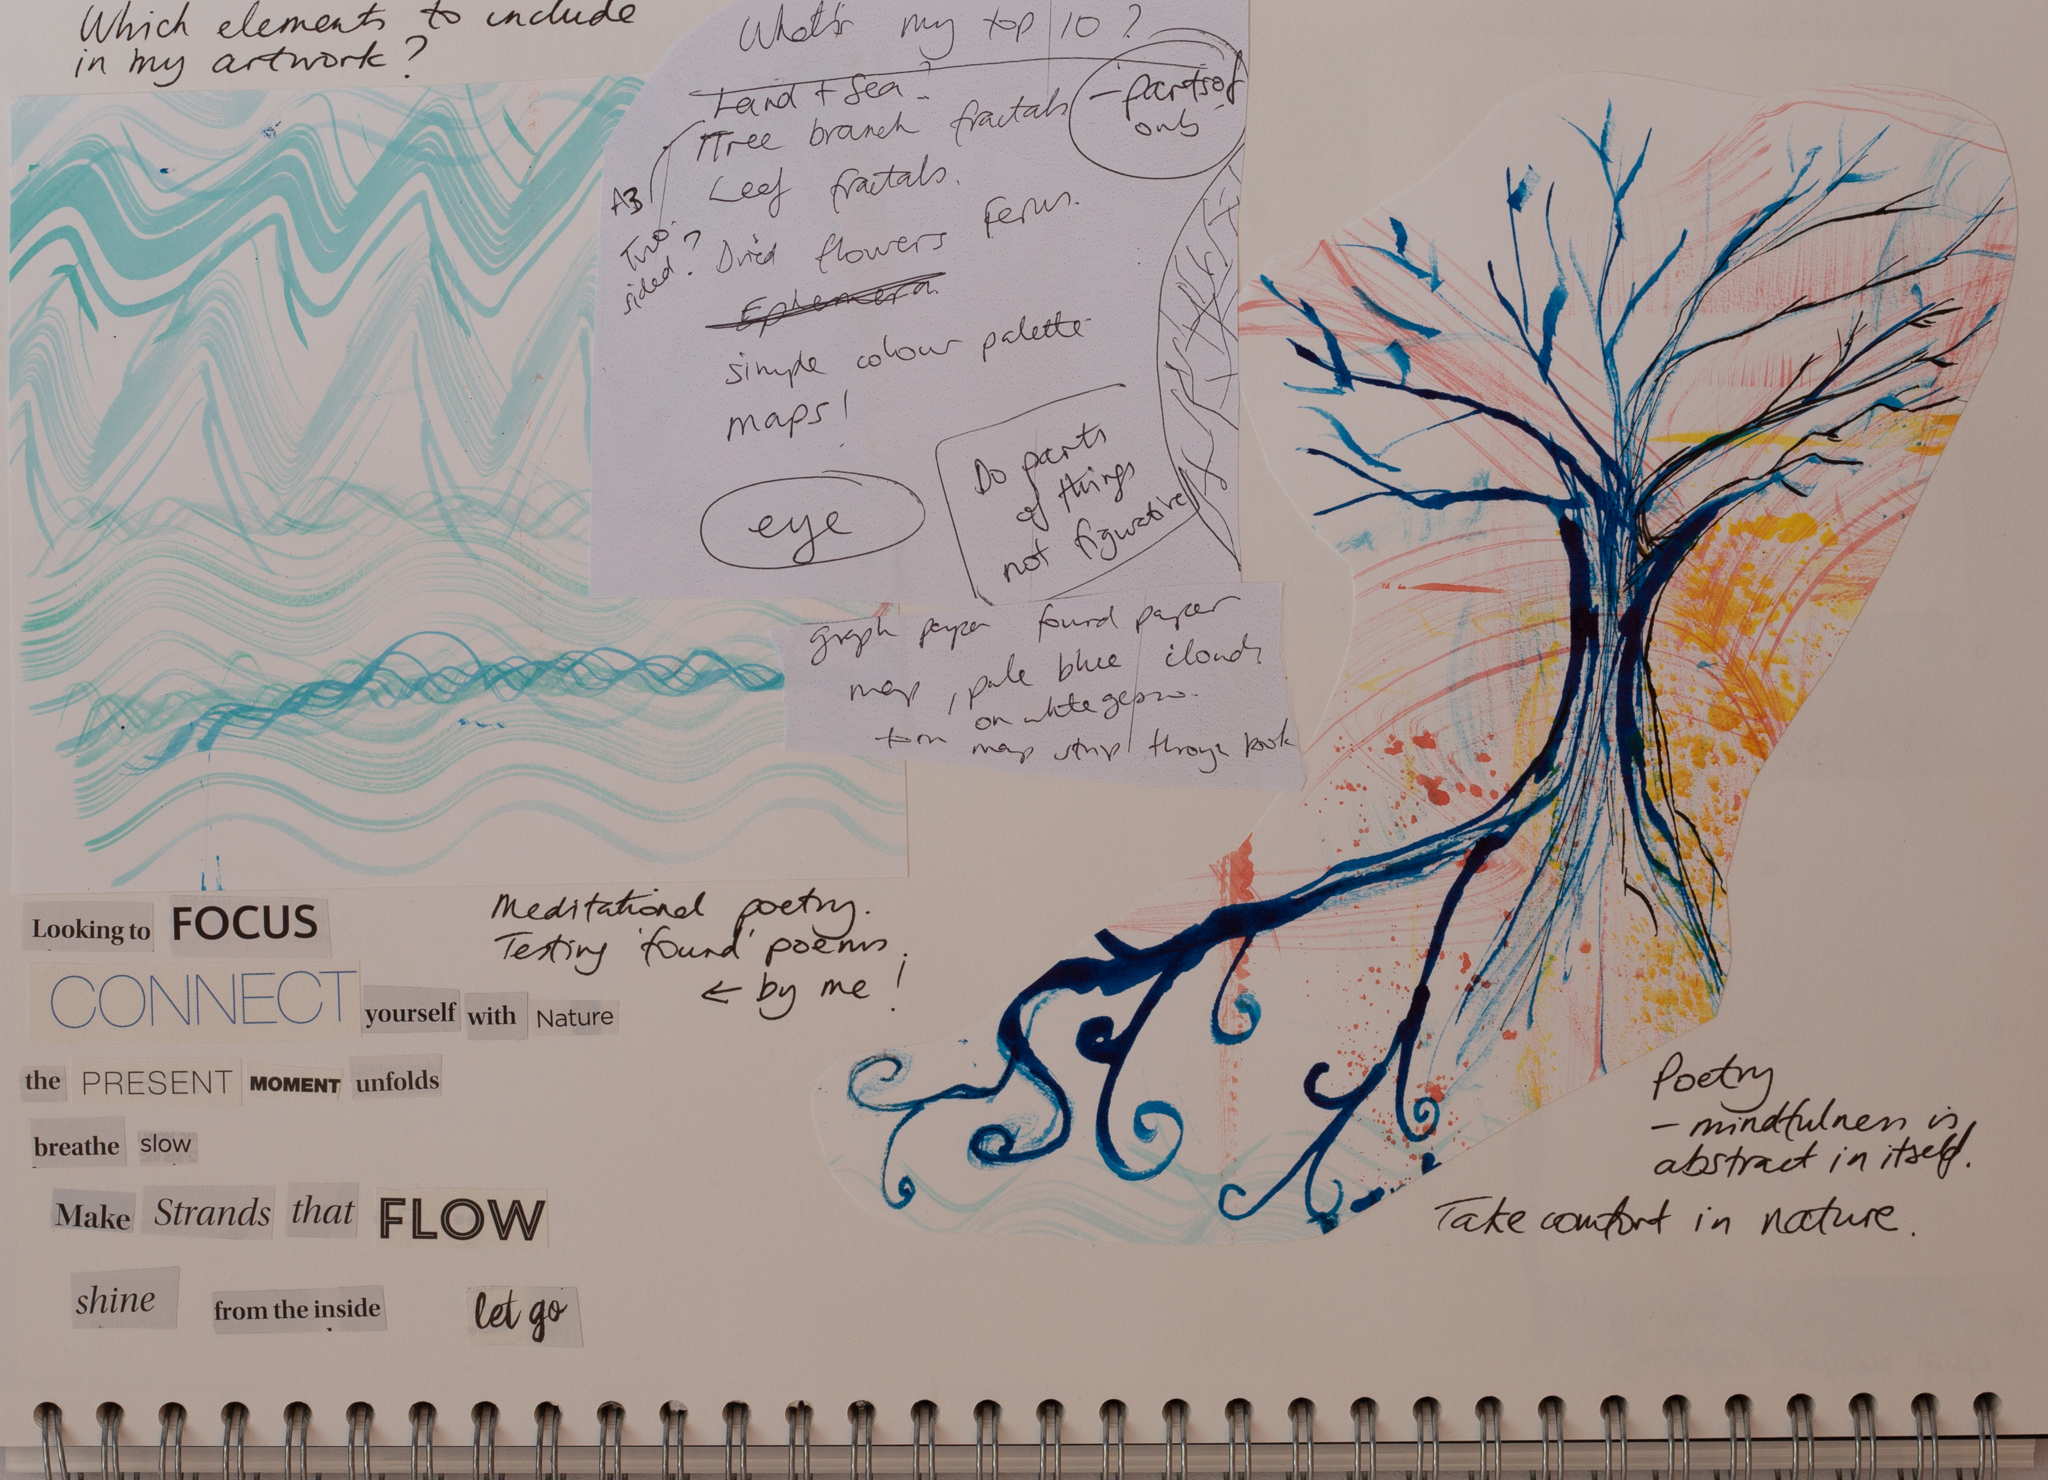 What to put into my map - choose my top 10 and reduce that again ... I want to use all the colours and all the ideas!